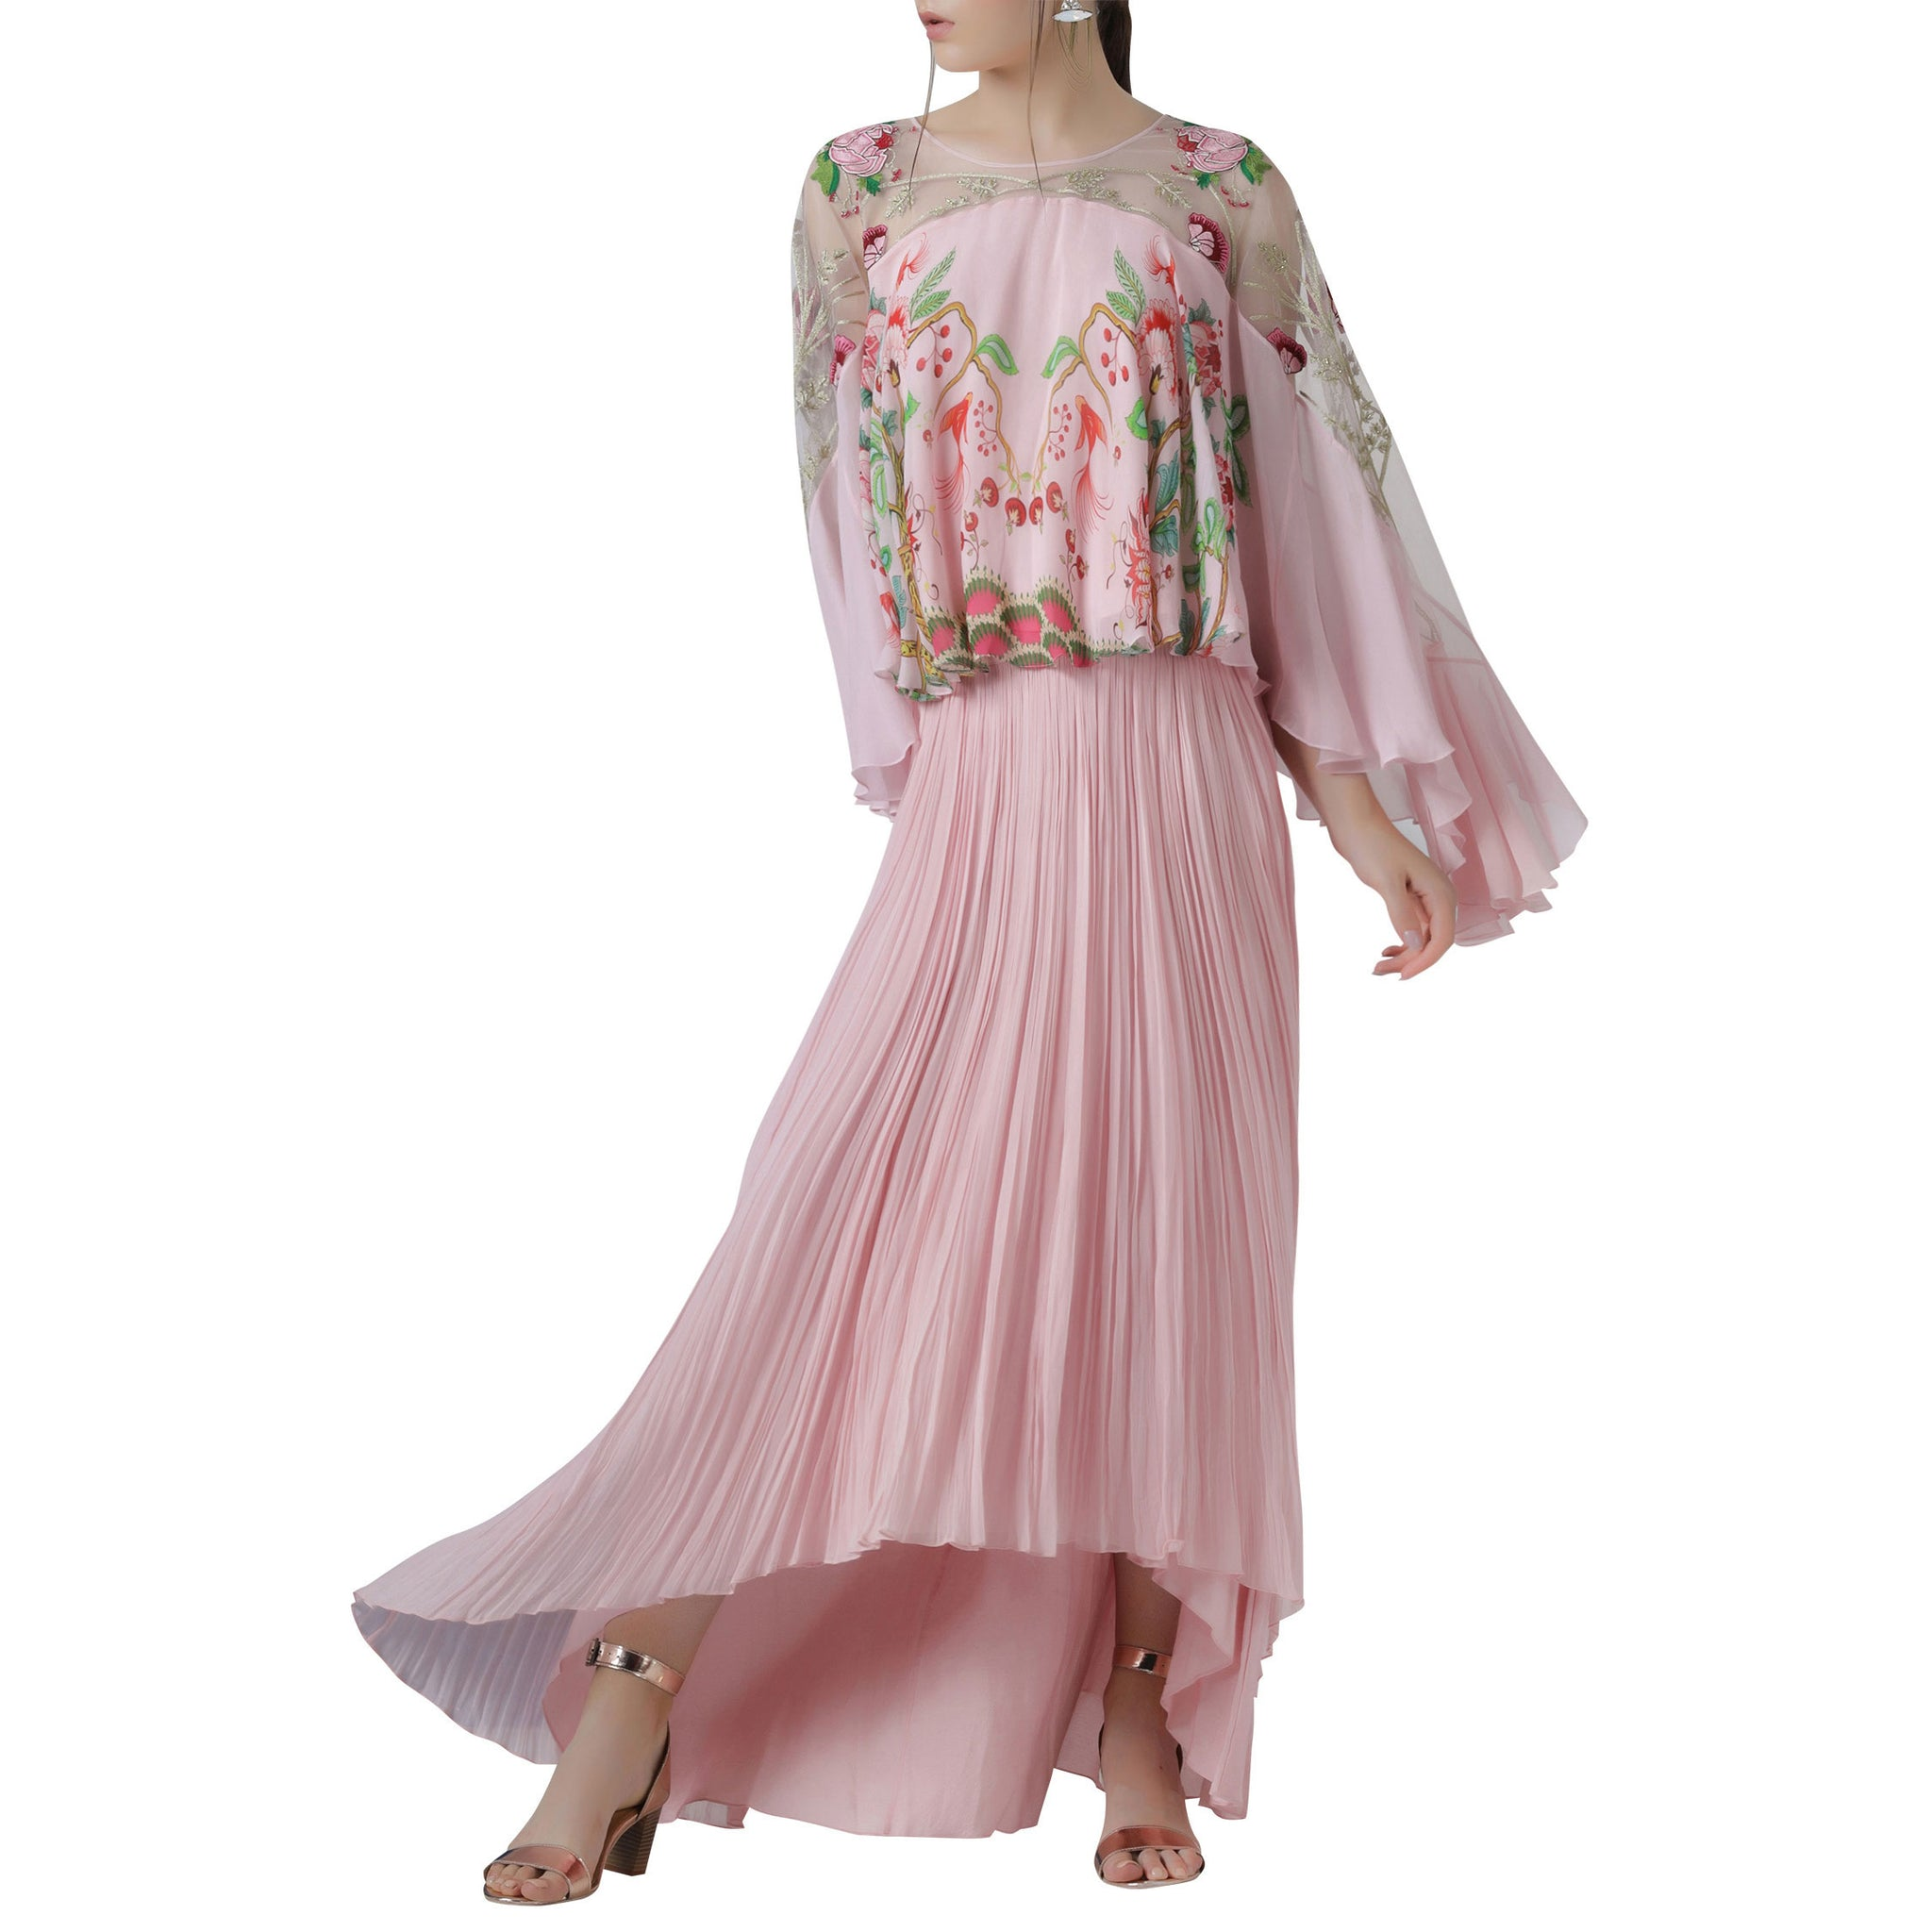 Embroidered and Printed Cape Top with Pleated Skirt